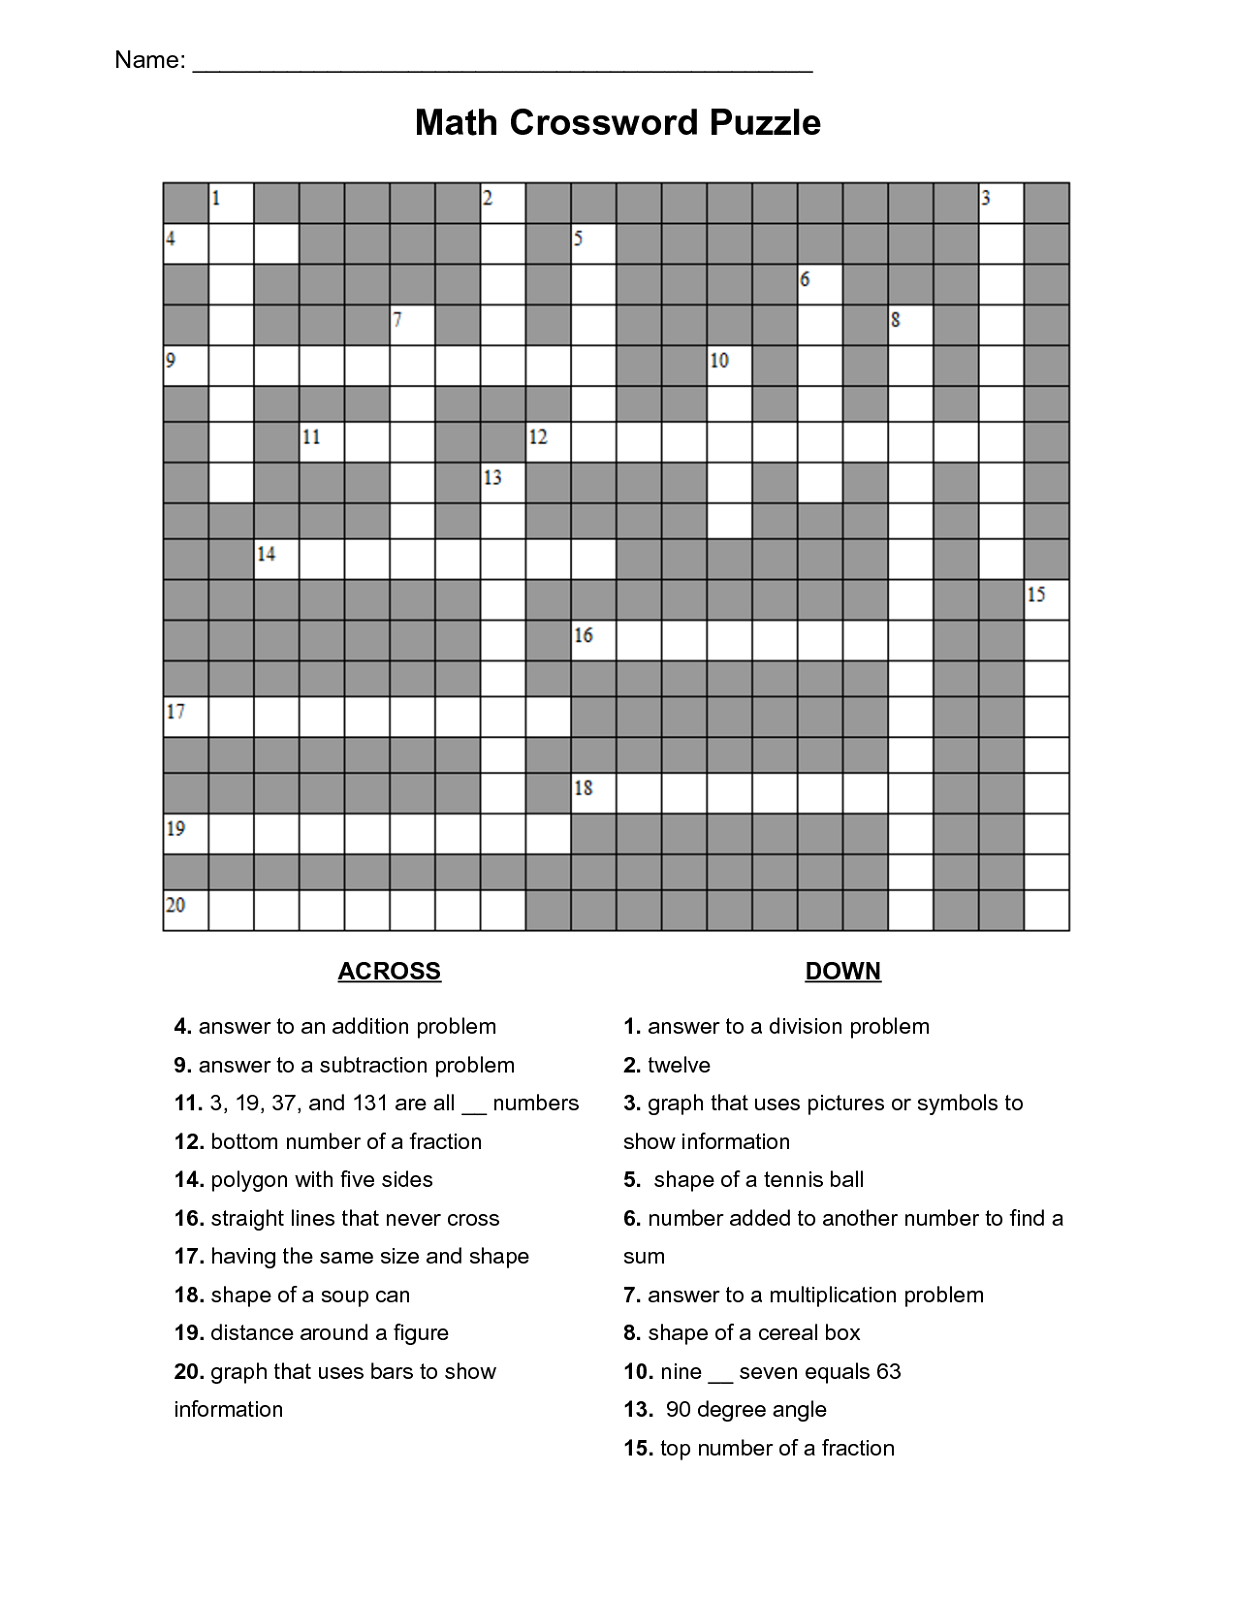 math puzzles printable crossword